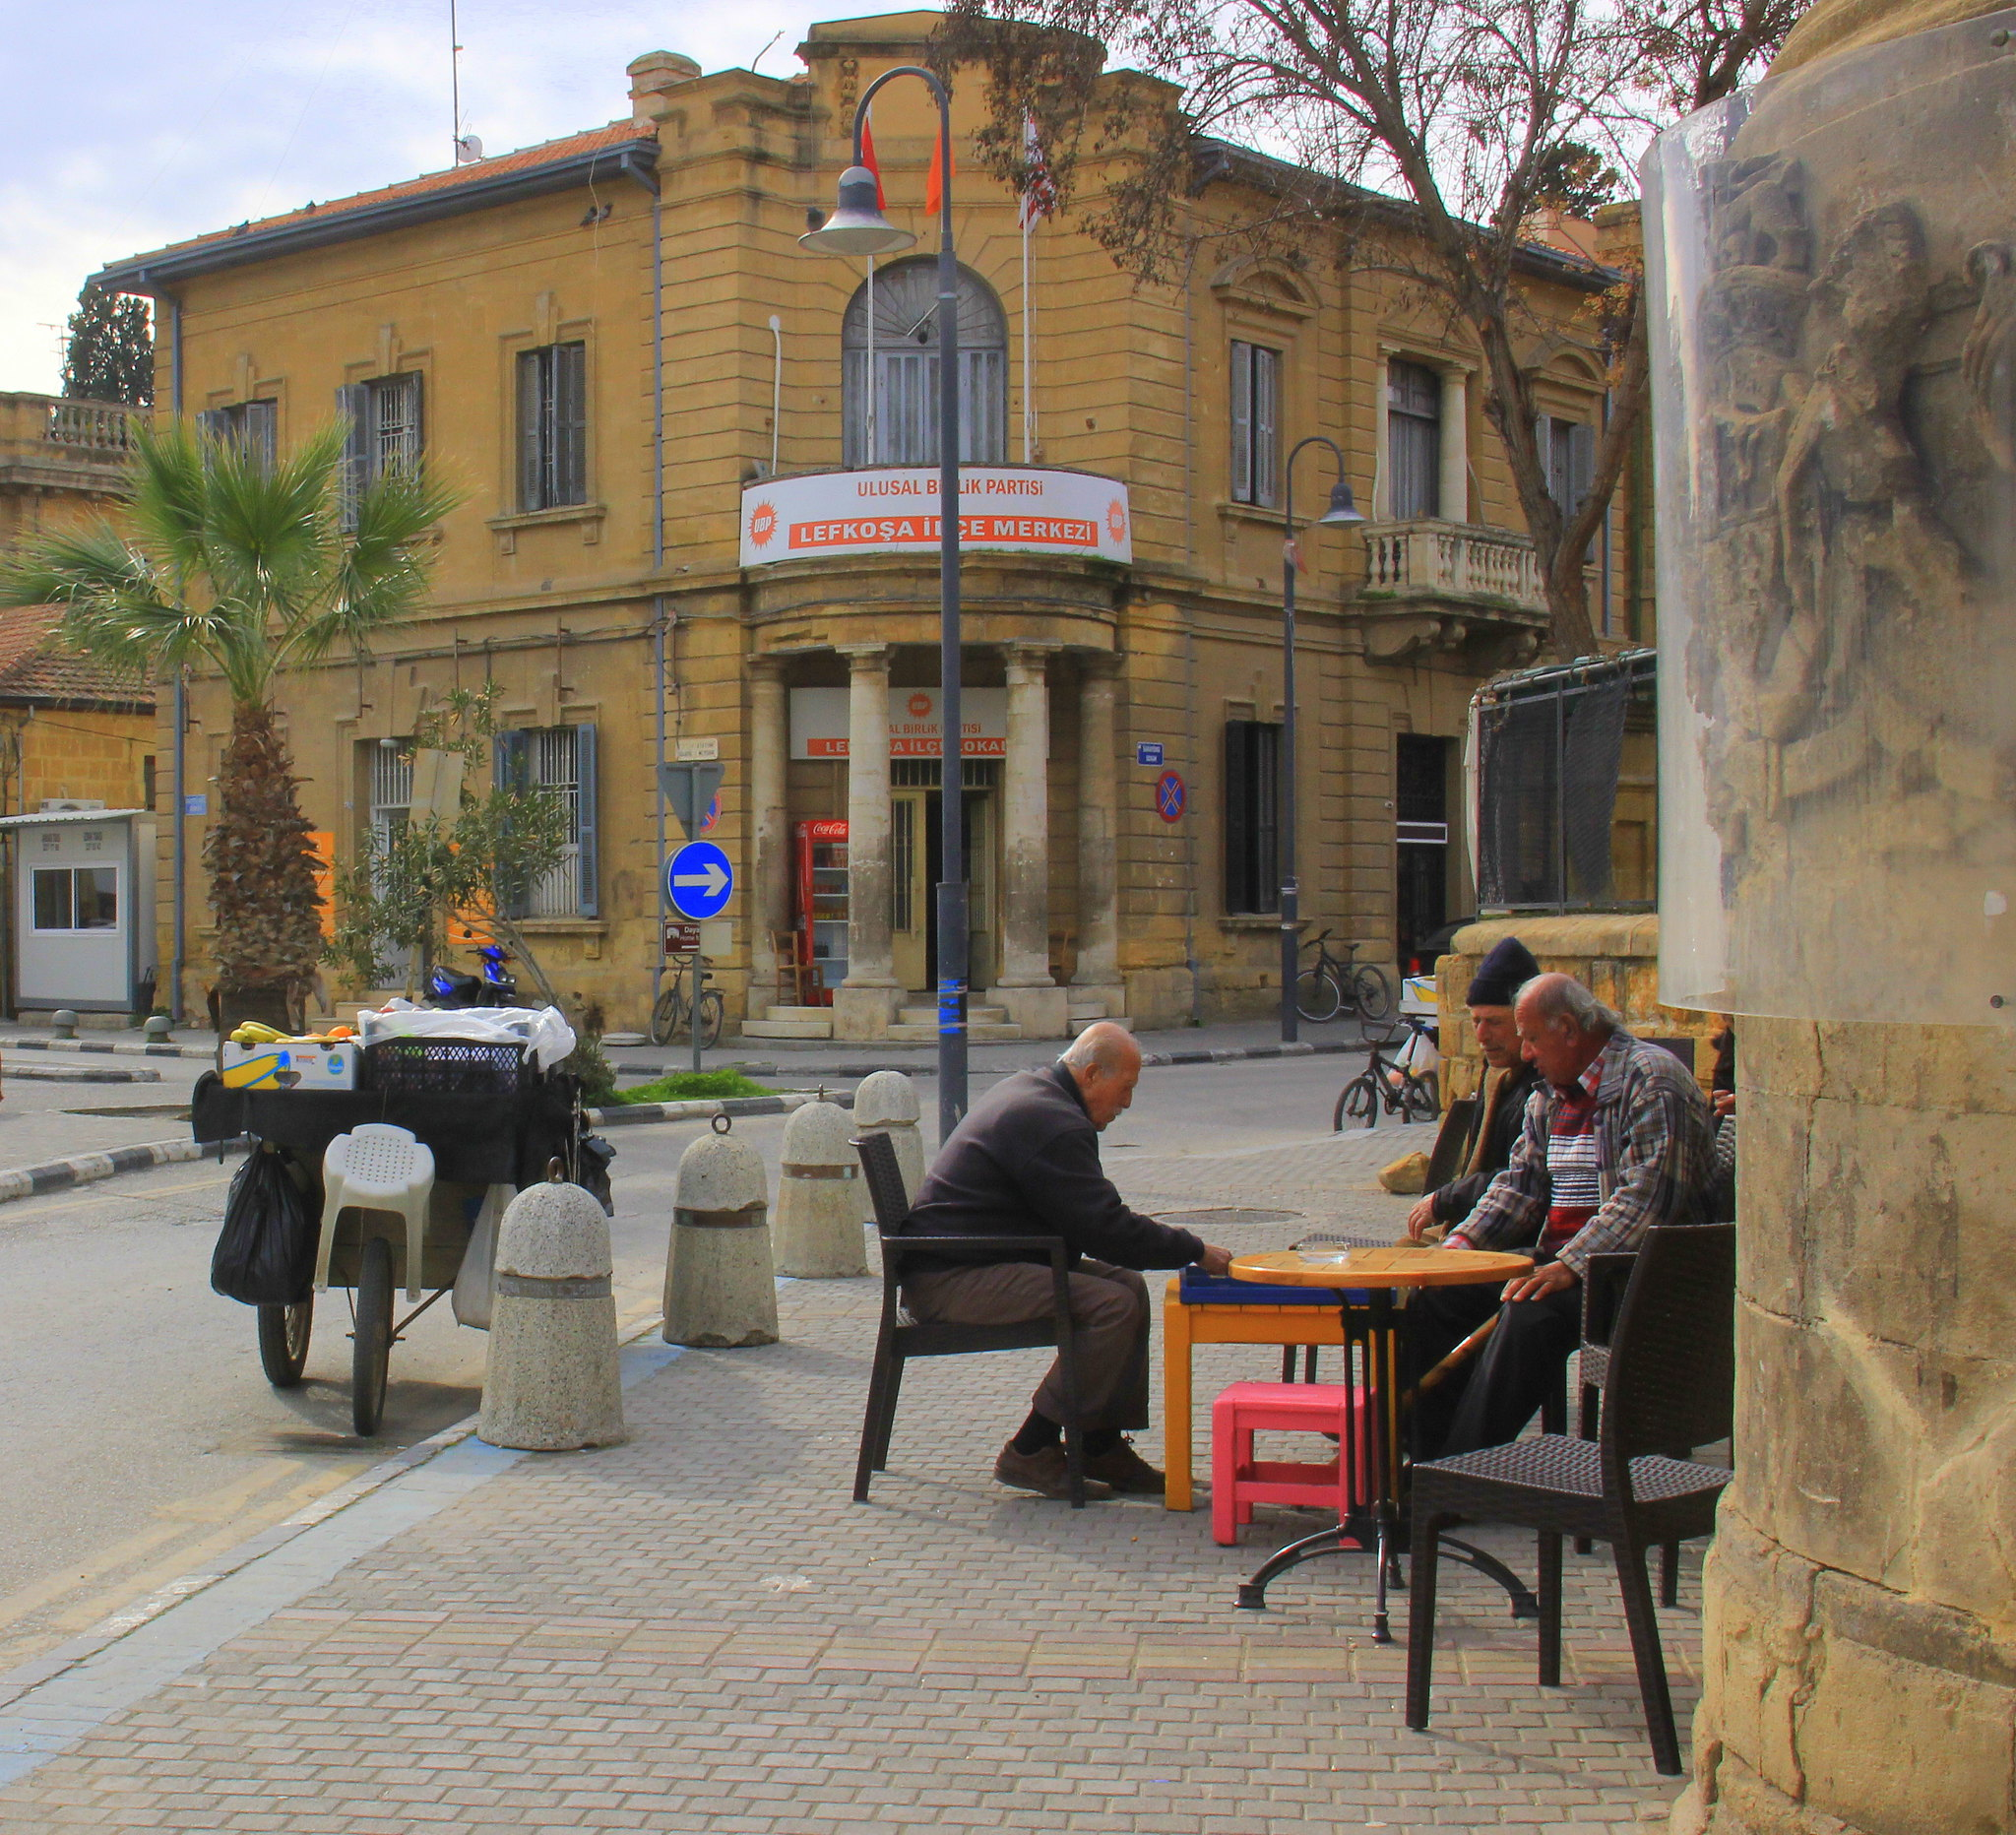 Nicosia Old Town is not to be missed if you visit Northern Cyprus